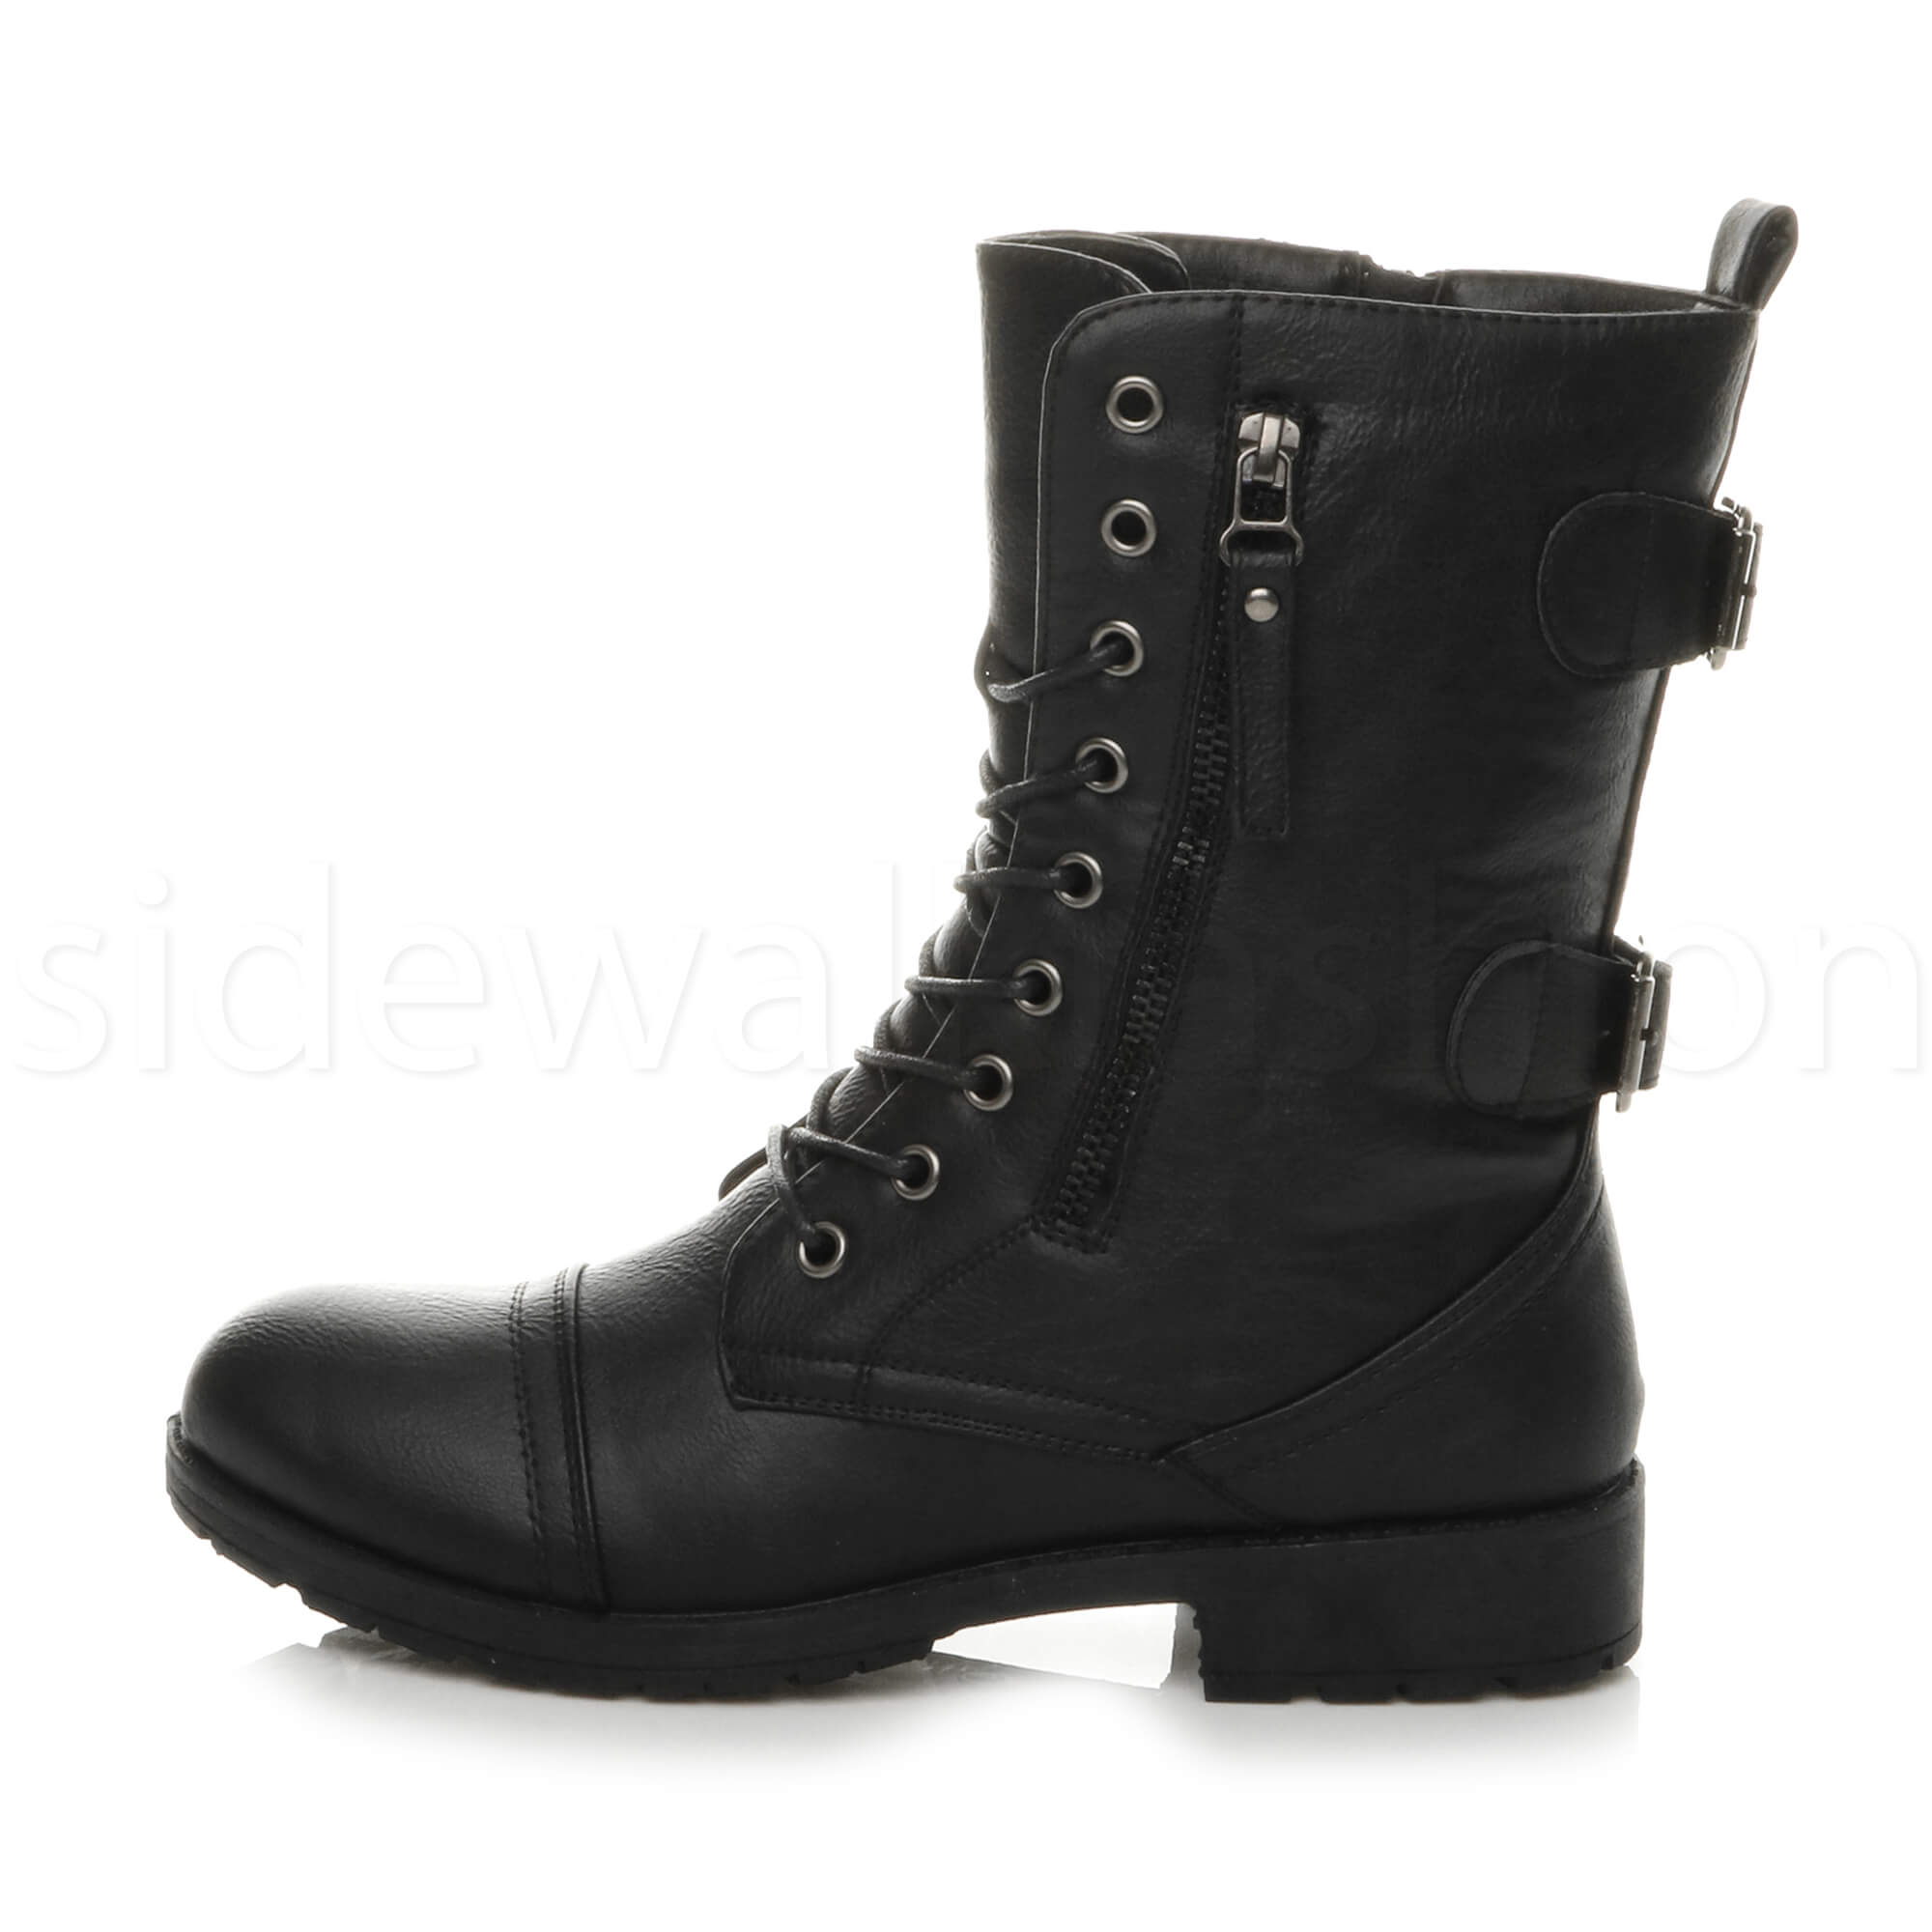 Womens-ladies-low-heel-flat-lace-up-zip-combat-biker-military-ankle-boots-size thumbnail 3